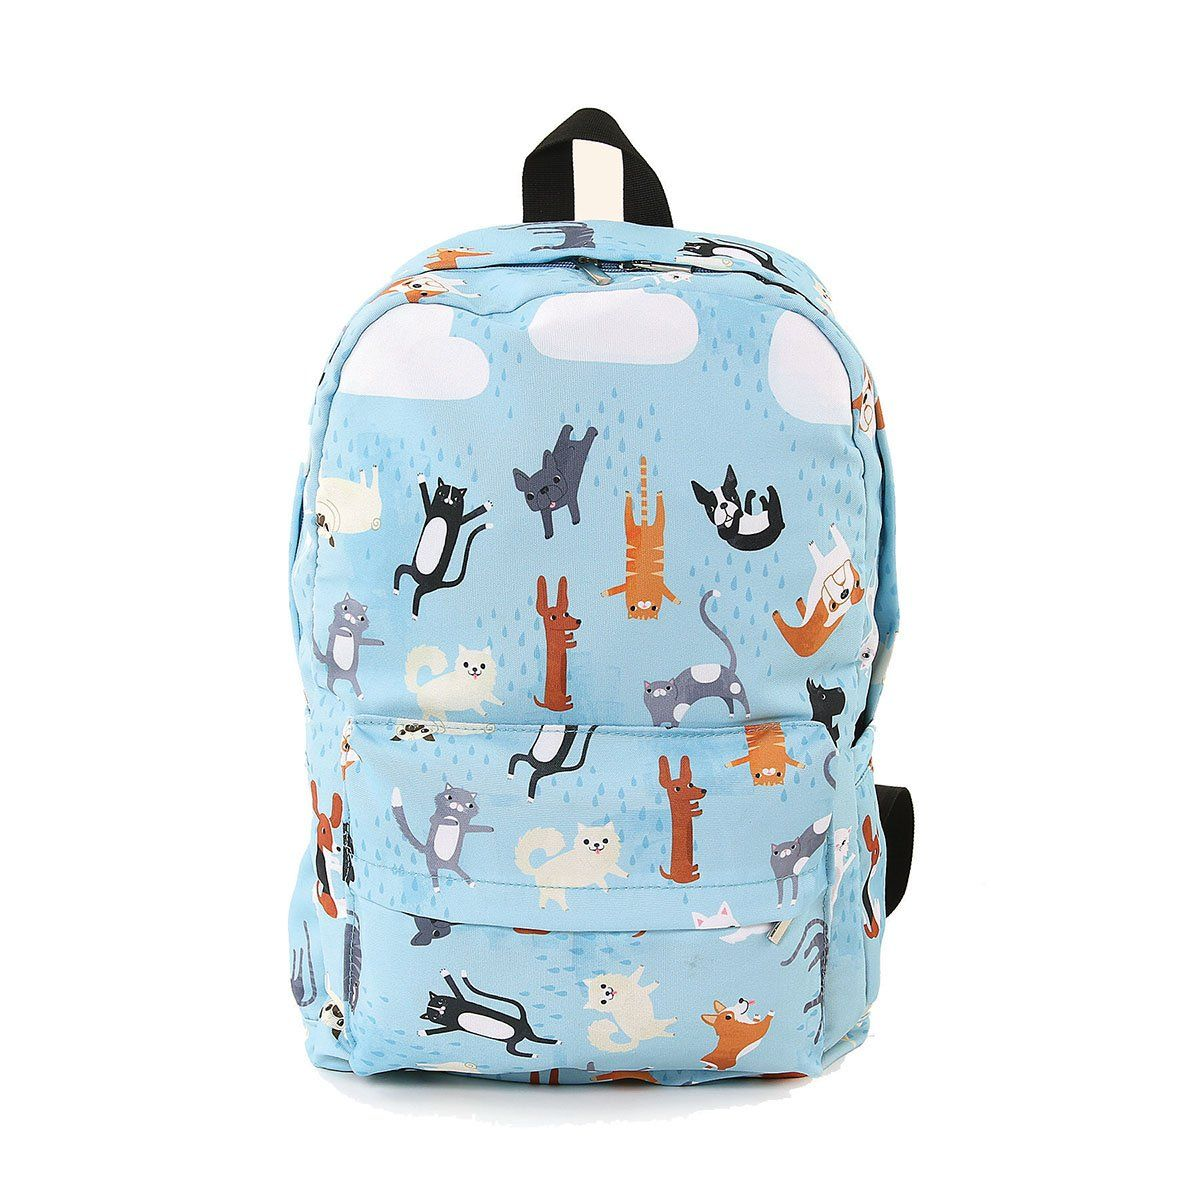 3729315dfa96 Raining Cats And Dogs Printed Polyblended Fabric Backpack: Clothing ...